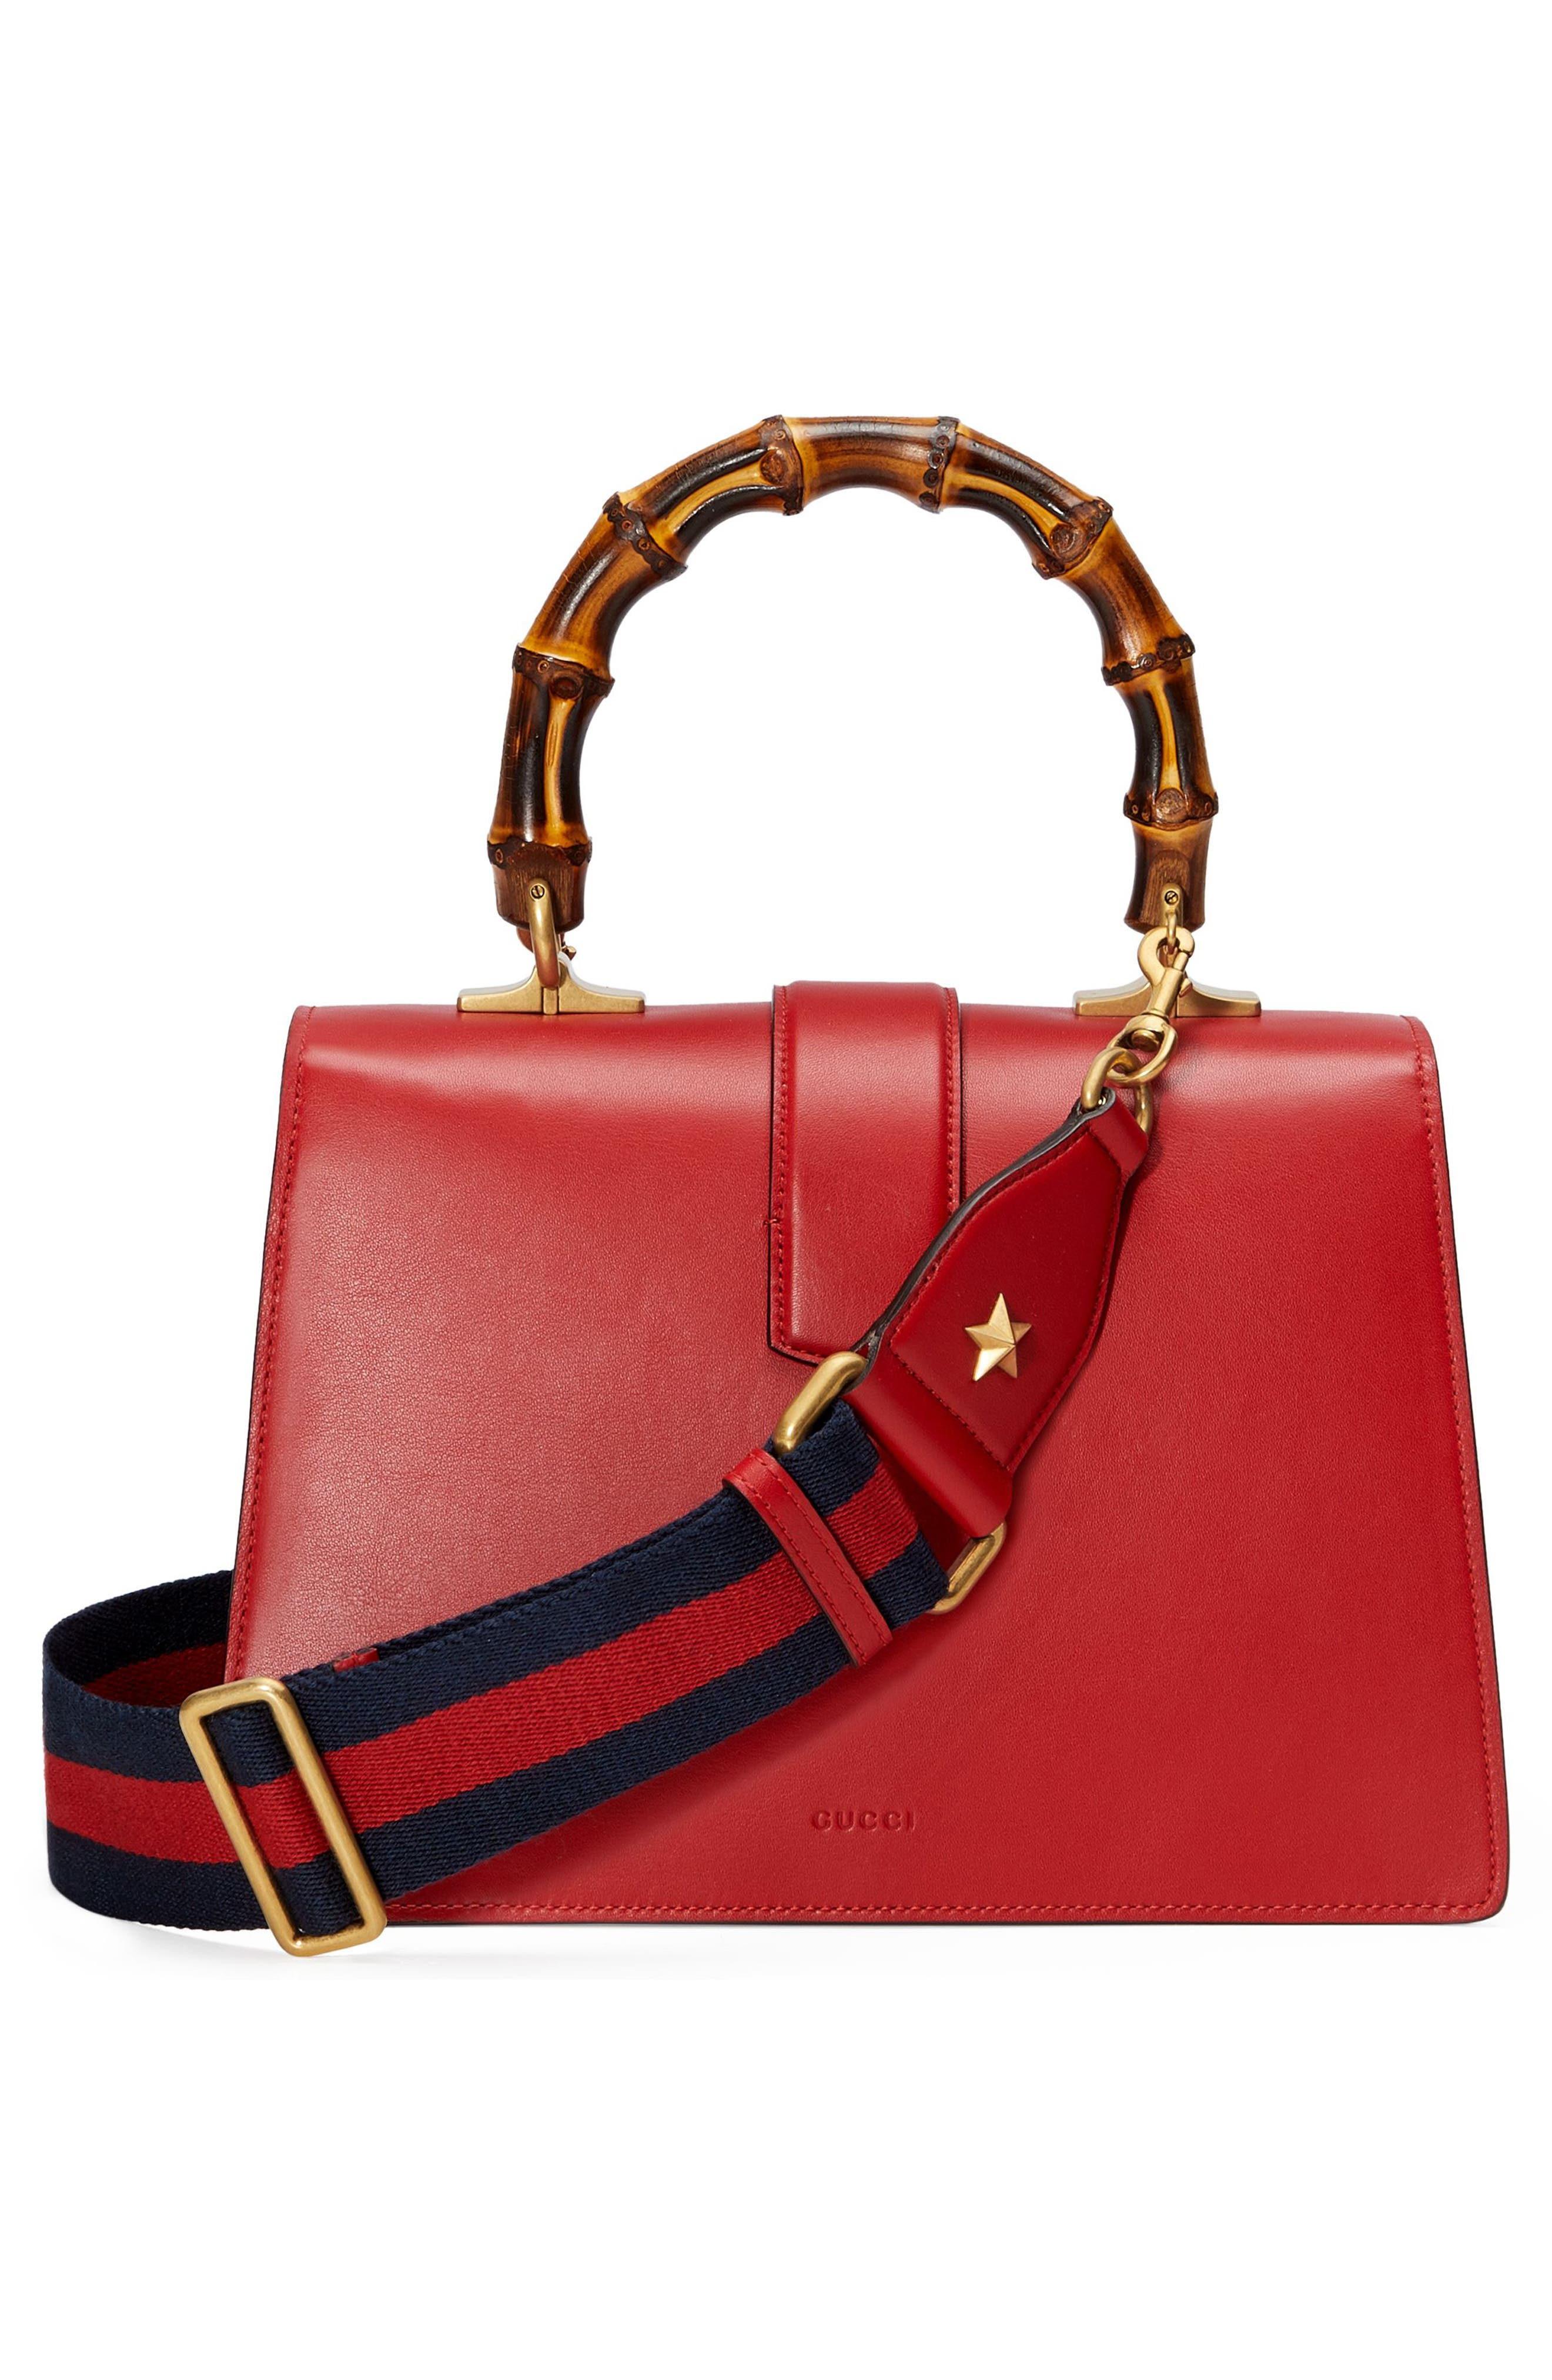 Small Dionysus Top Handle Leather Shoulder Bag,                             Alternate thumbnail 2, color,                             Red/ White/ Blue